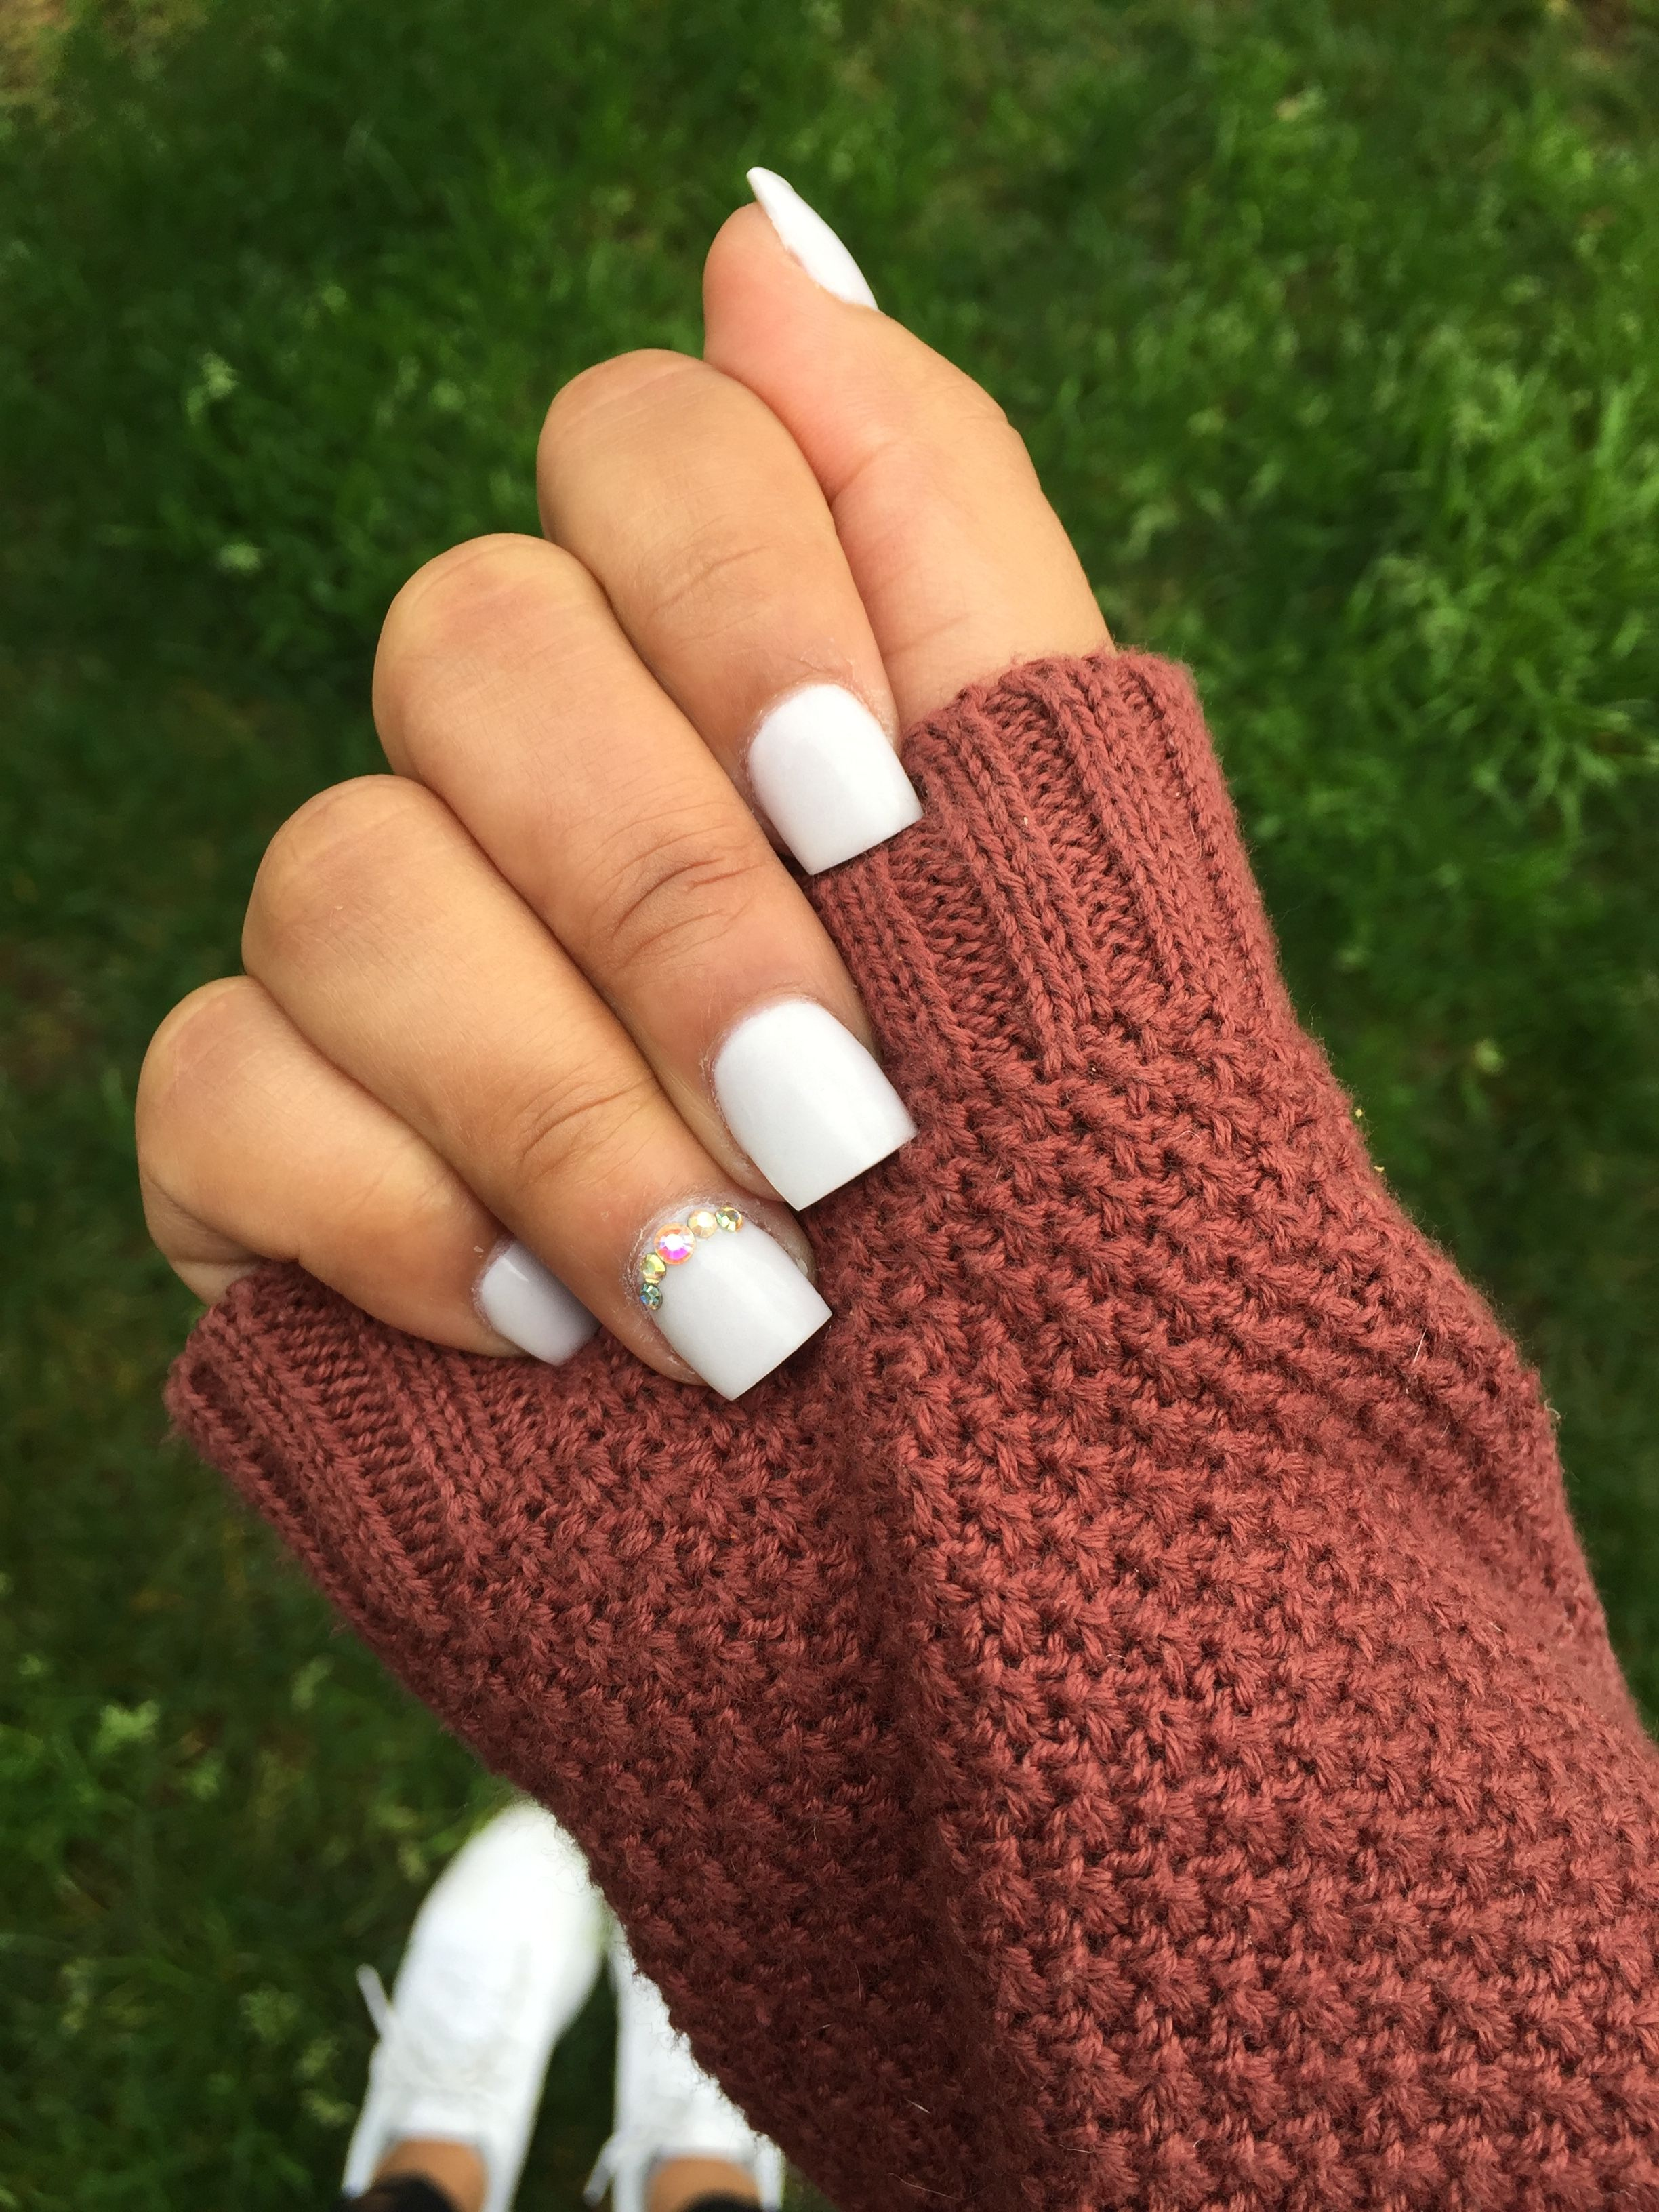 Short acrylic nails || light lavender & gray. Practical and subtle ...